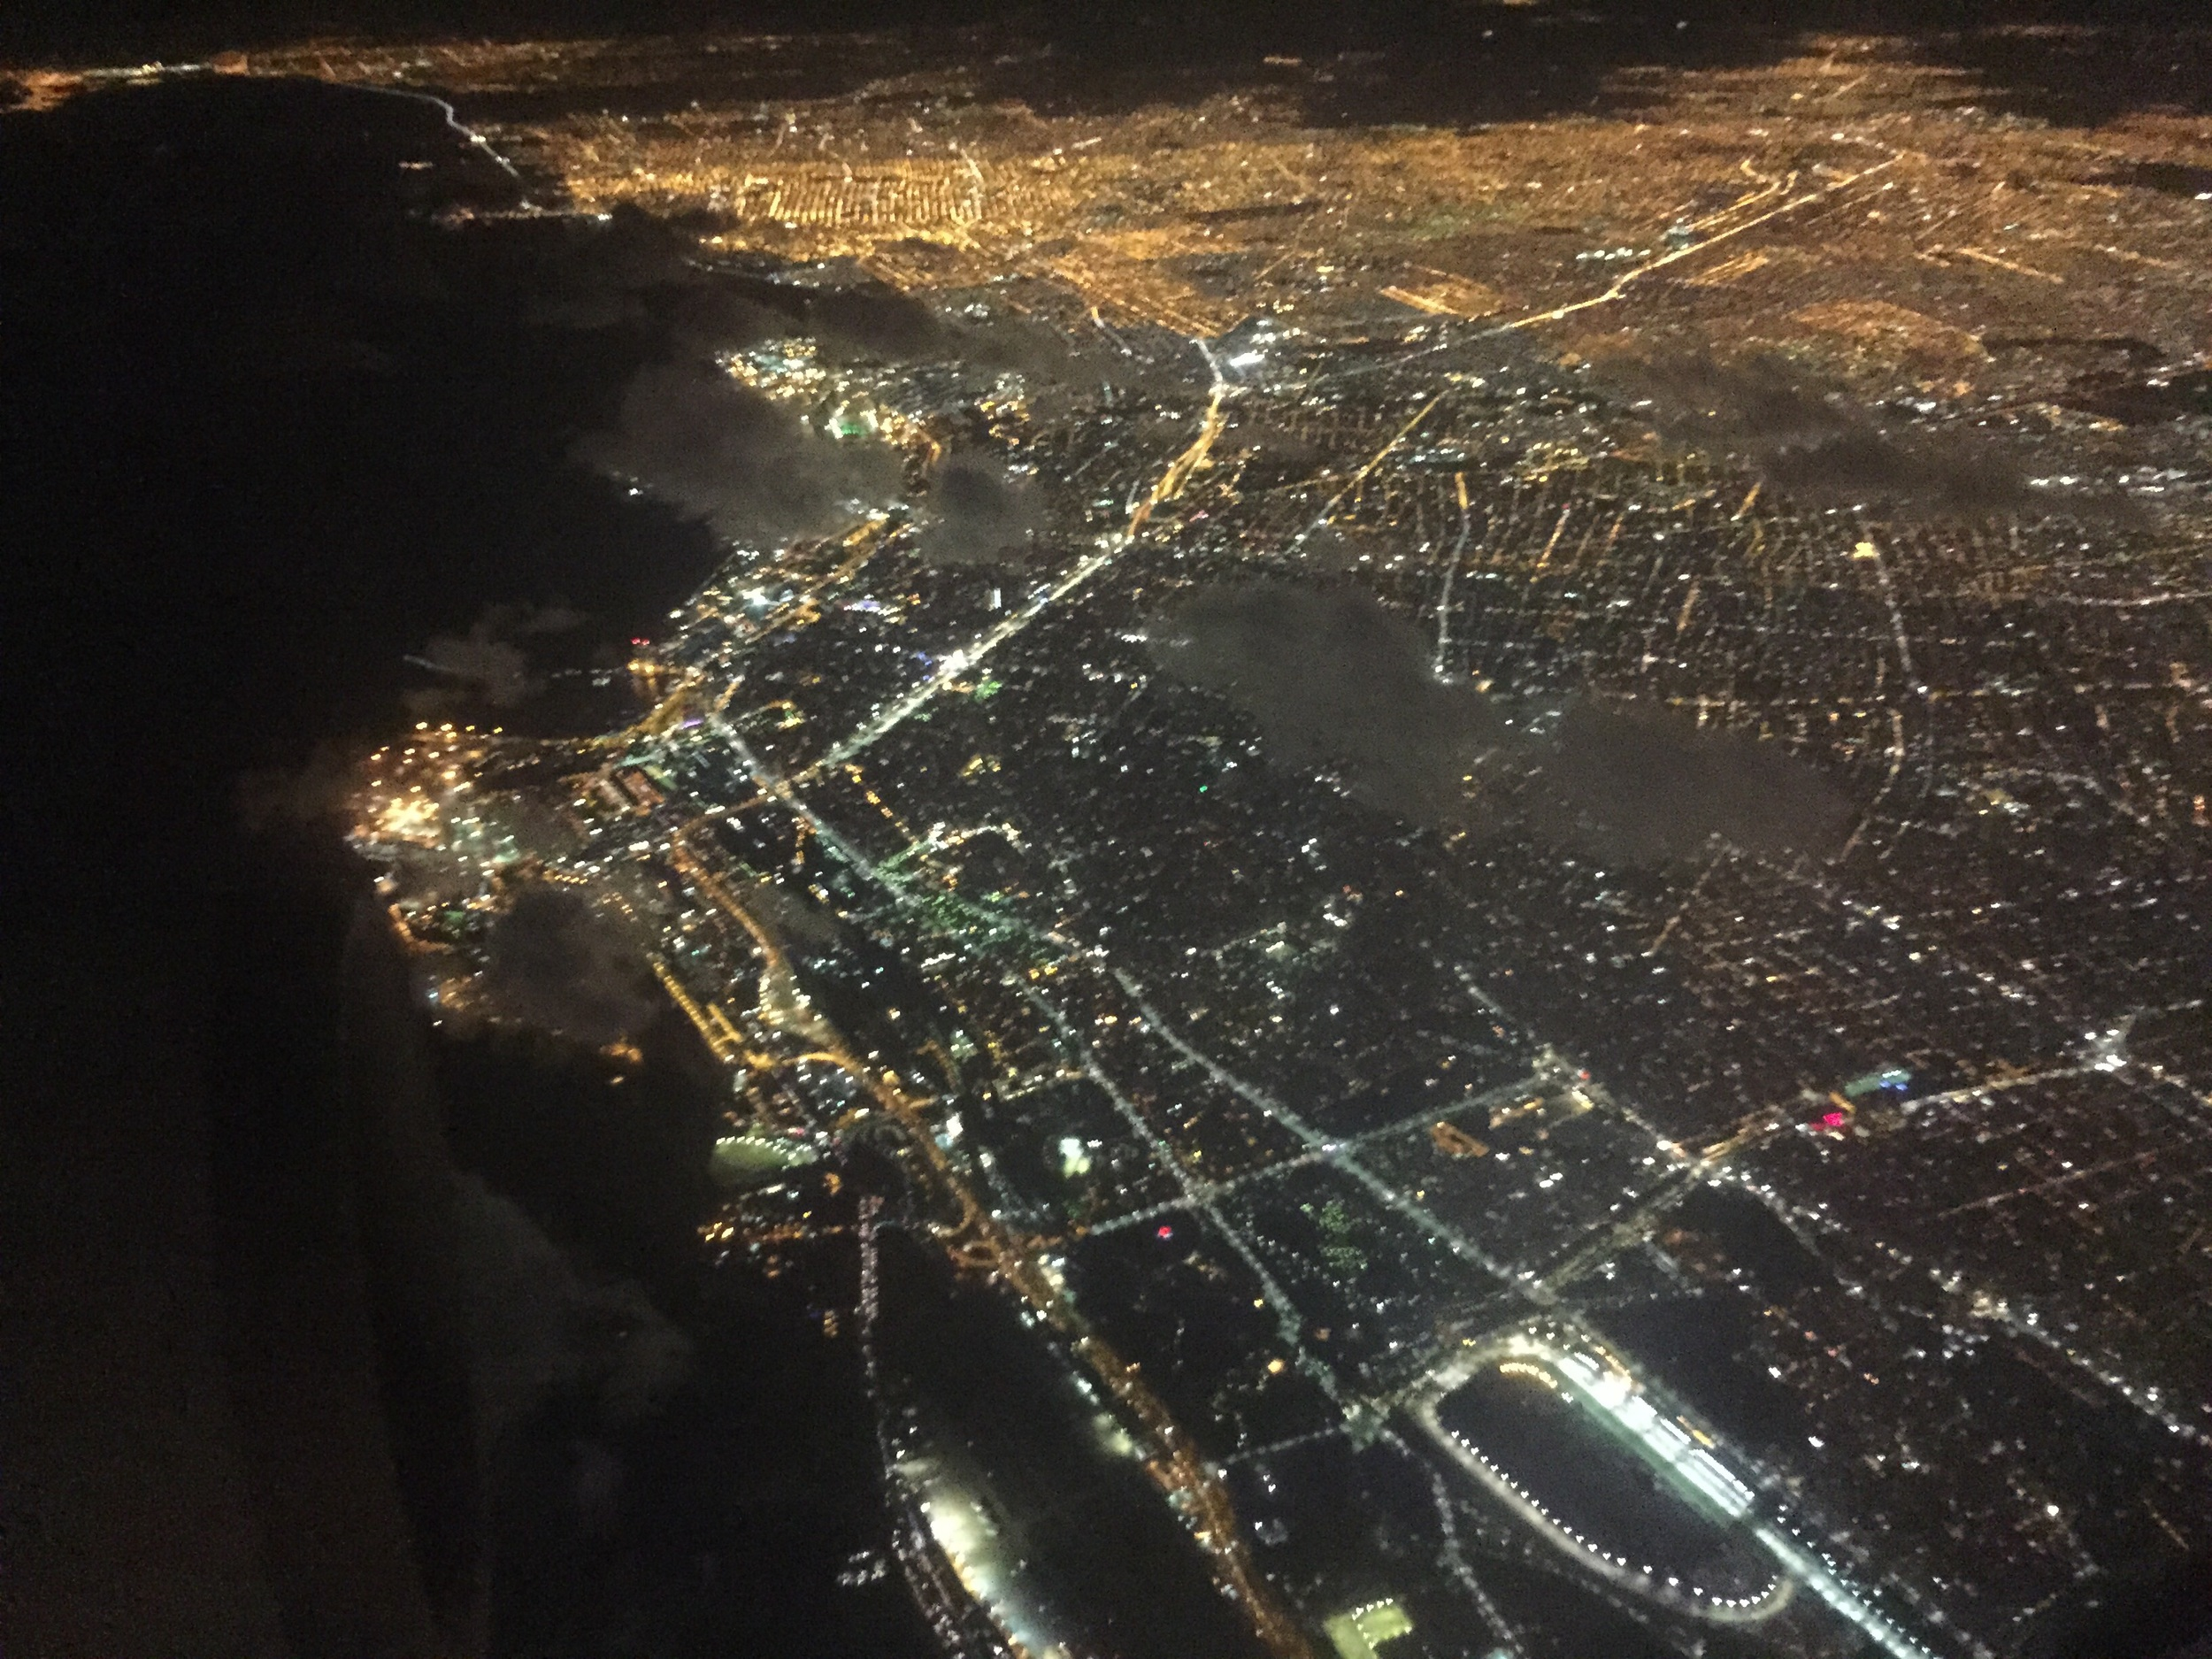 Buenos Aires at night from above.